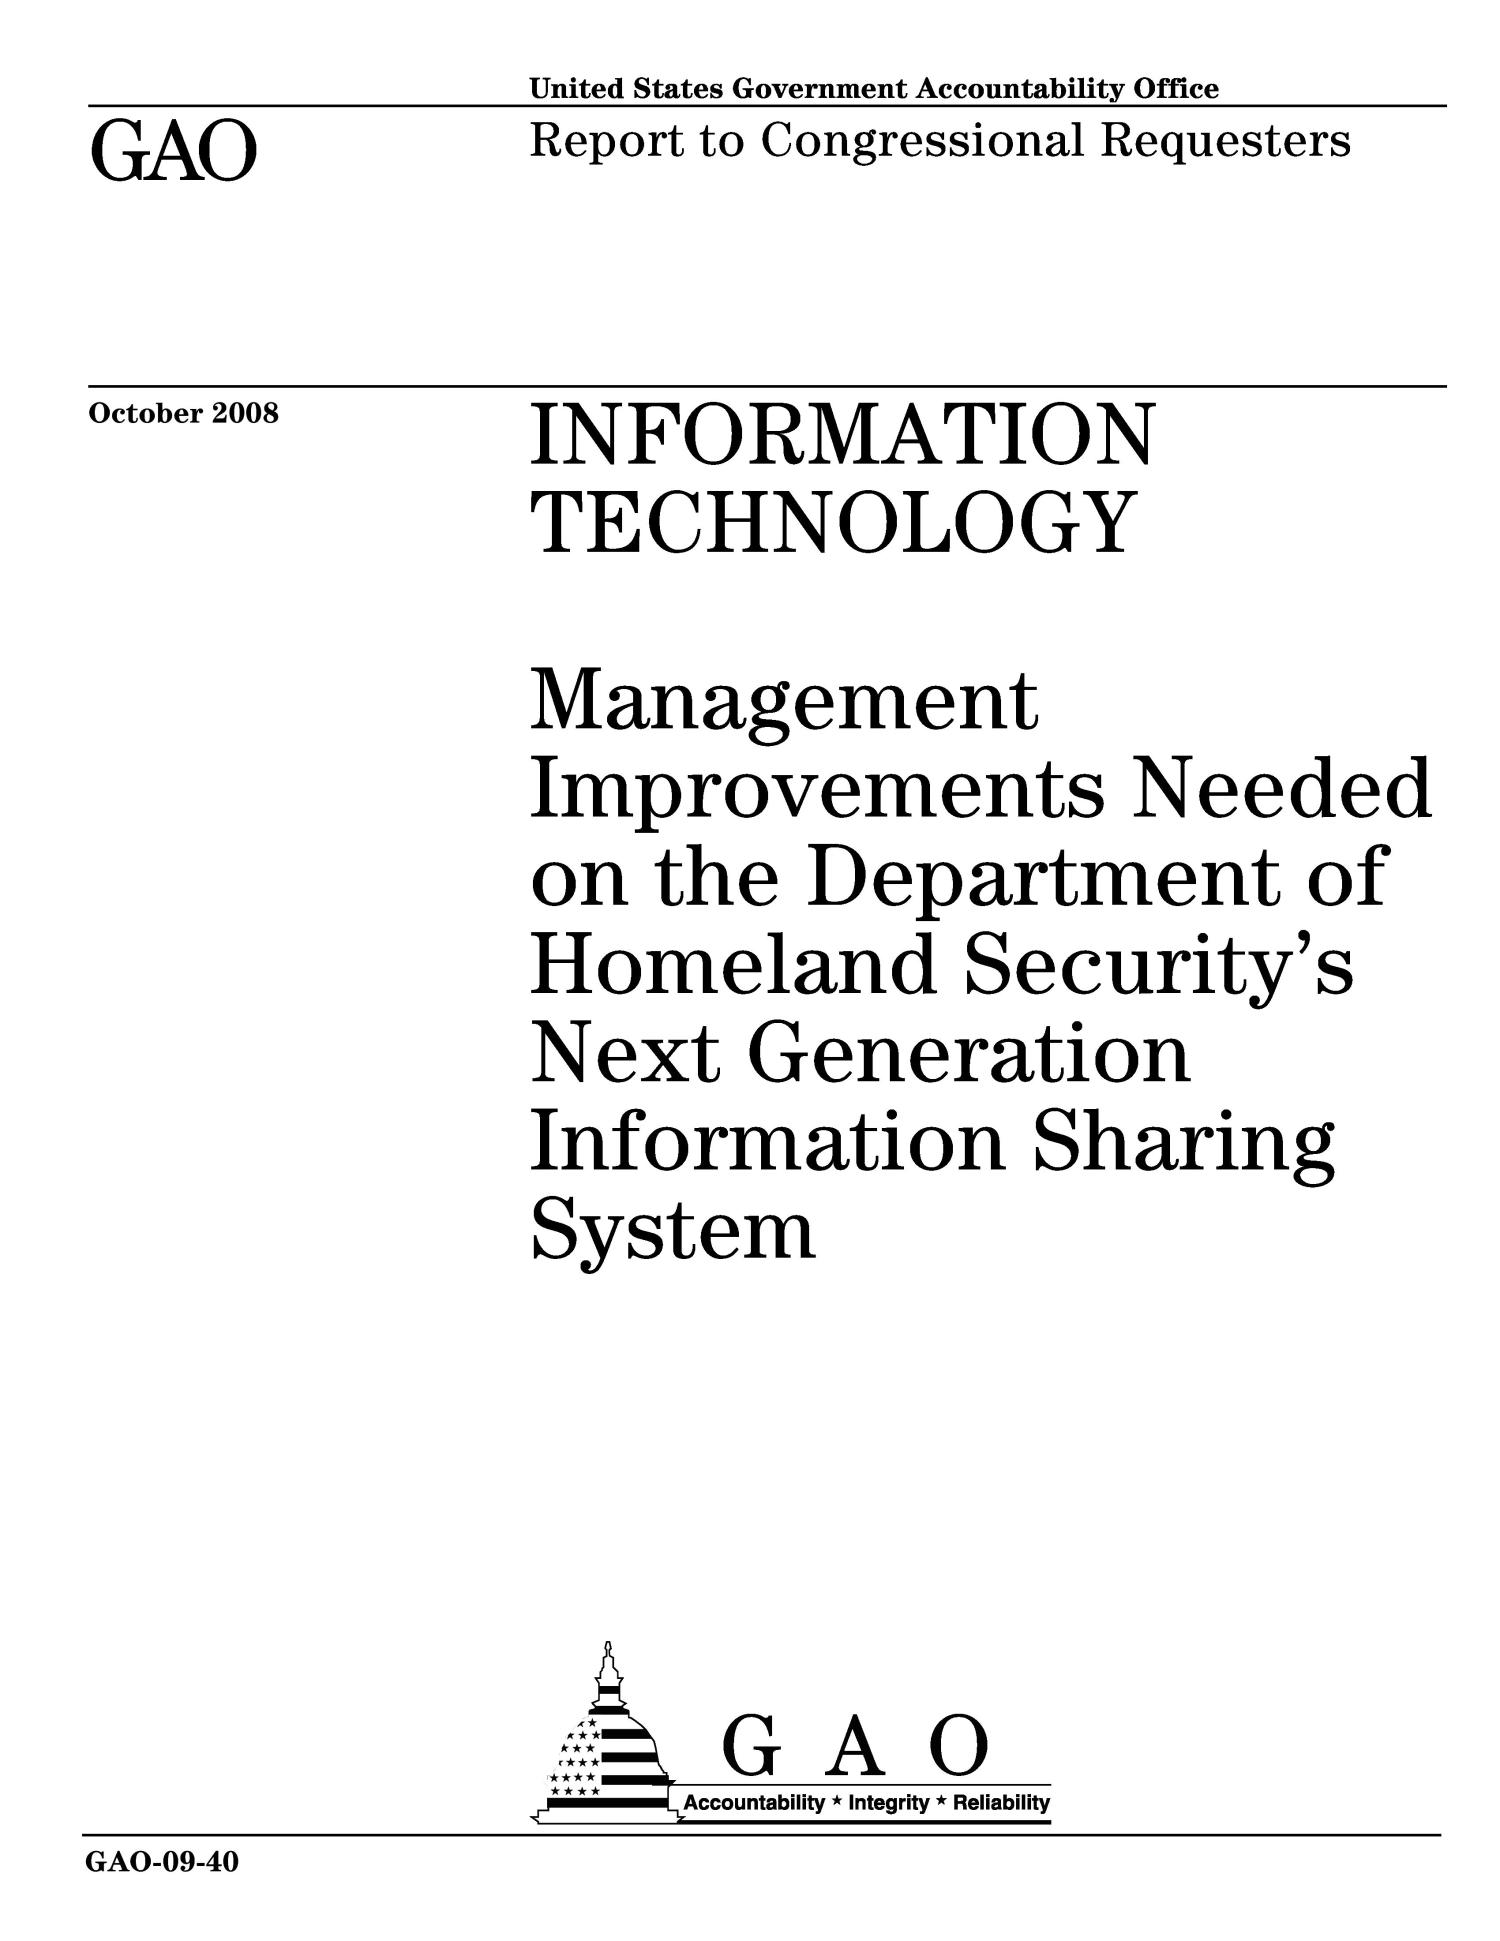 Information Technology: Management Improvements Needed on the Department of Homeland Security's Next Generation Information Sharing System                                                                                                      [Sequence #]: 1 of 58